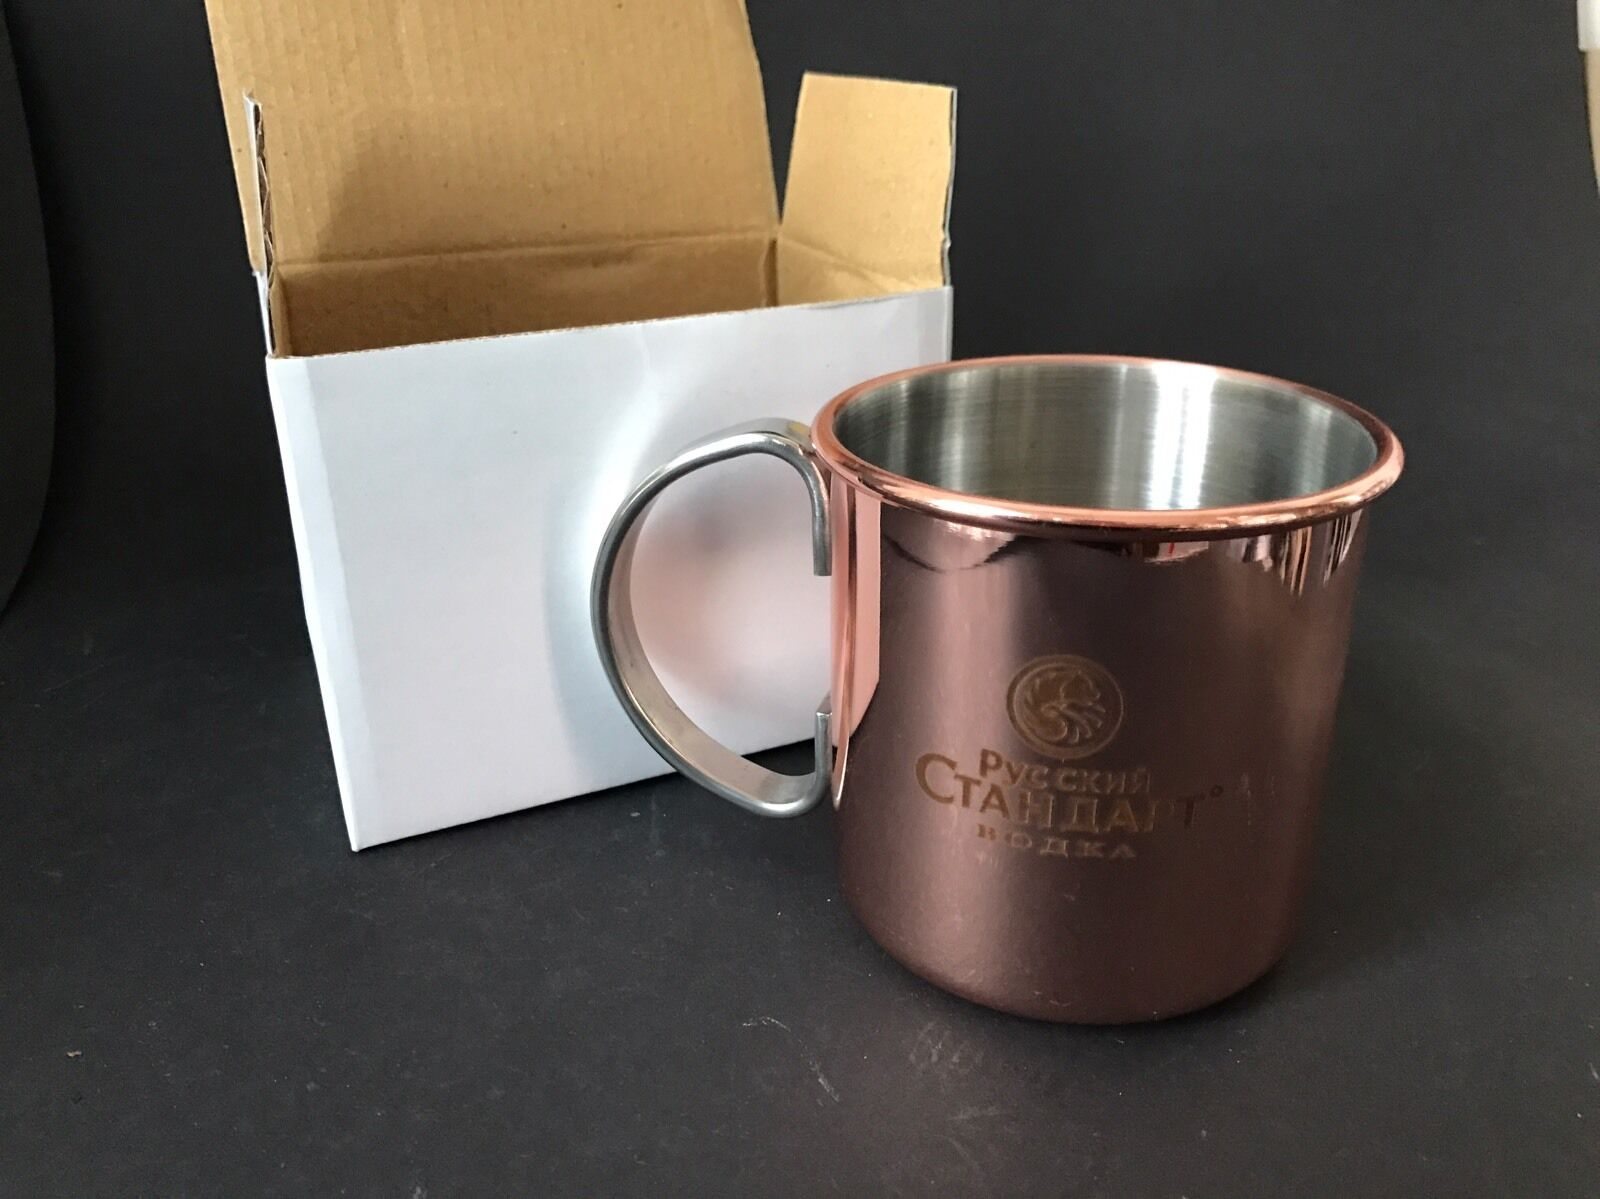 russian standard vodka kupfer becher moscow mule cup copper mug cocktail neu ovp eur 19 99. Black Bedroom Furniture Sets. Home Design Ideas